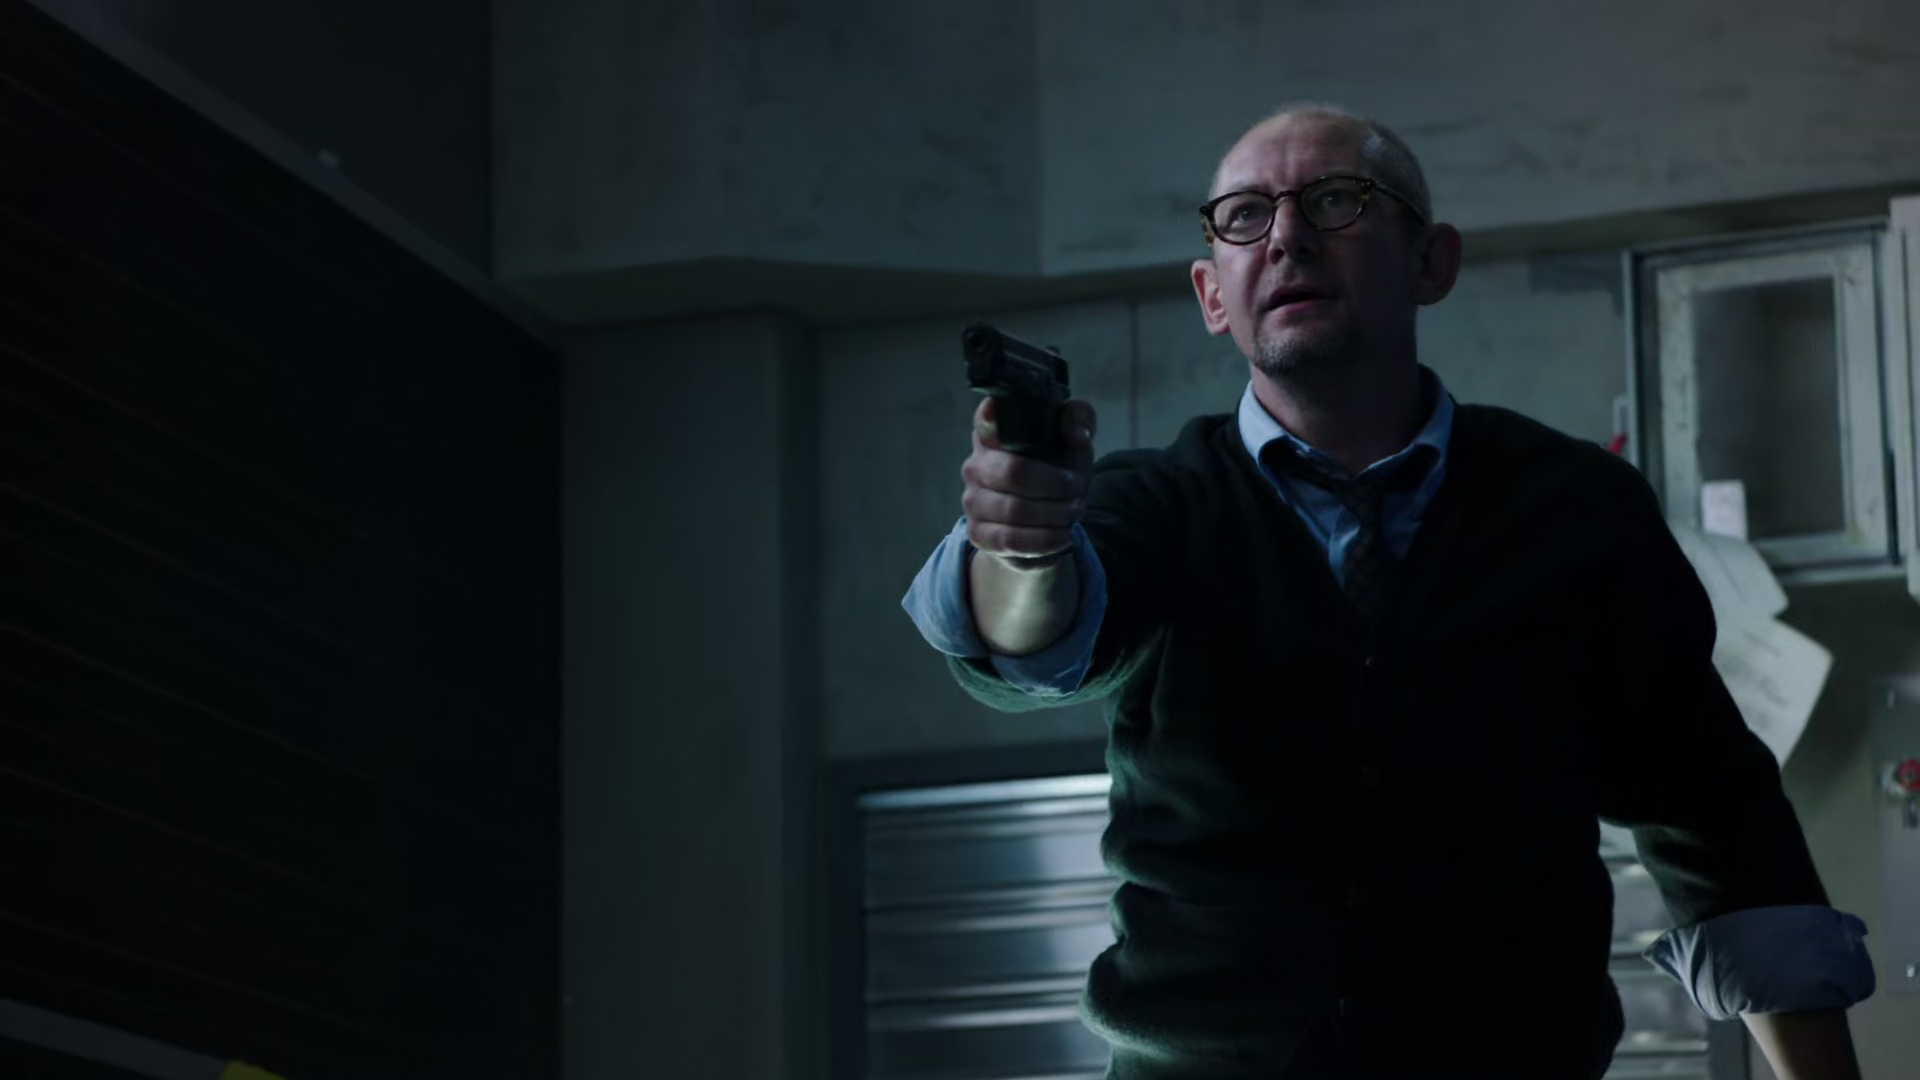 File:Franklin with a gun.jpg